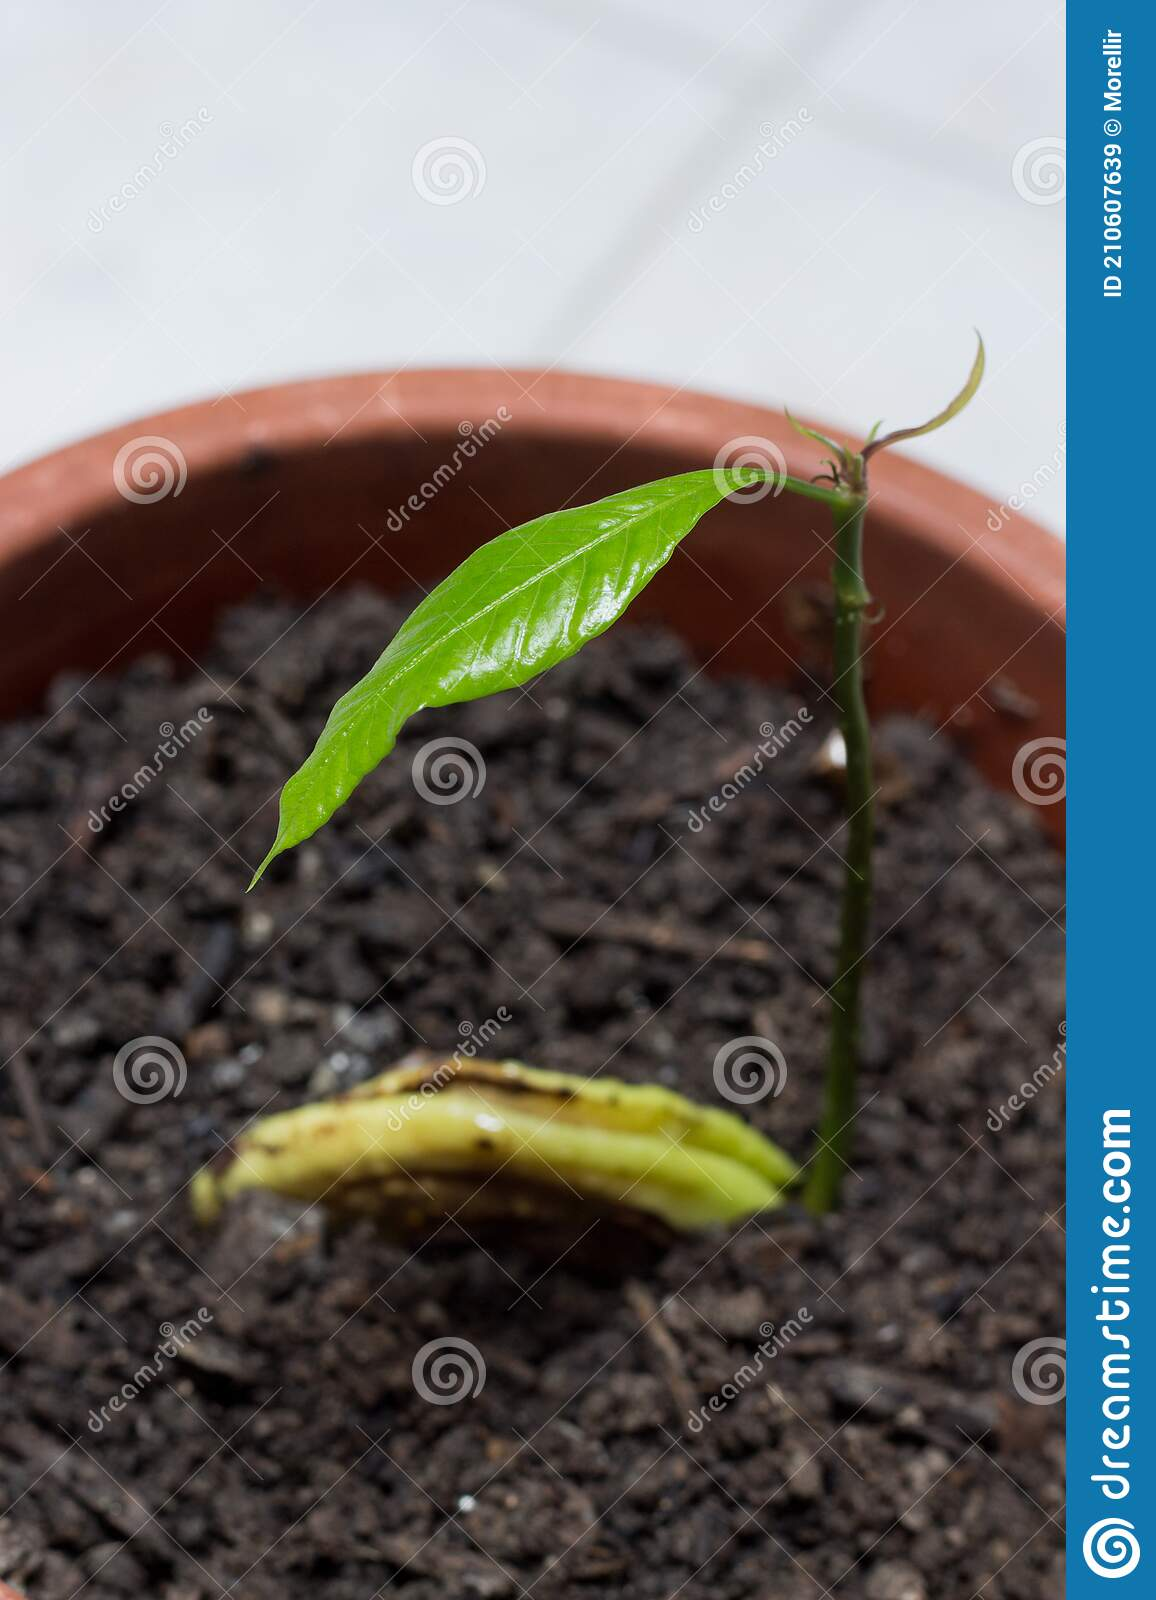 242 Mango Seedling Photos Free Royalty Free Stock Photos From Dreamstime